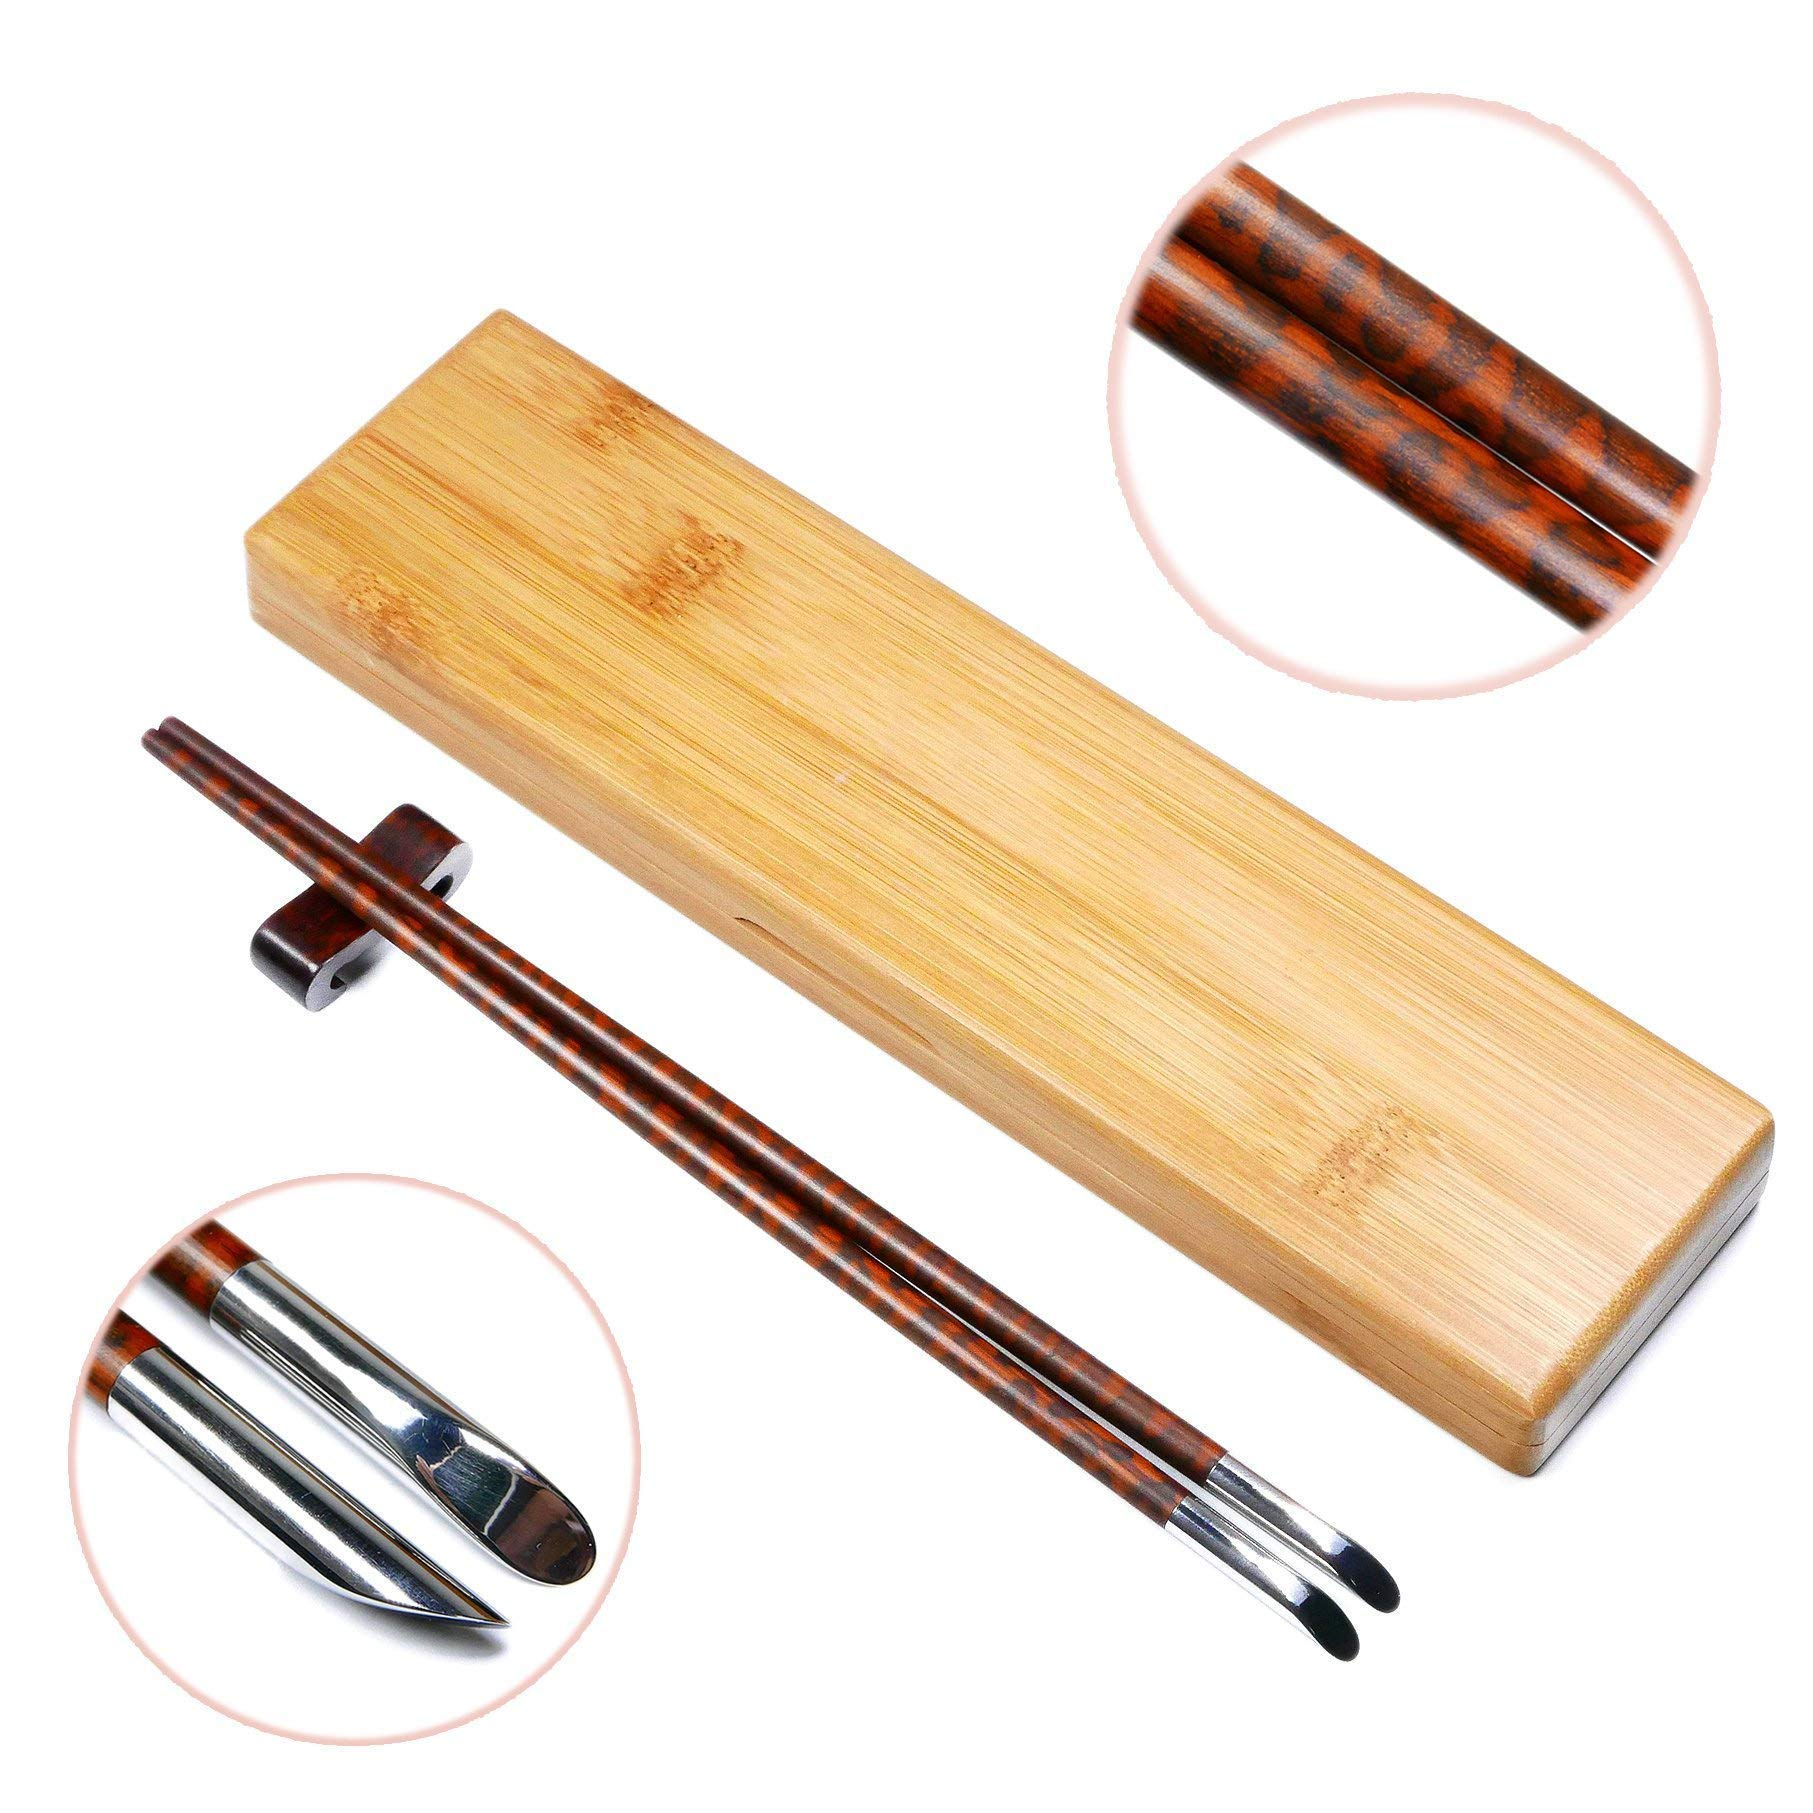 1 Pair Premium Natural Snakewood Chopsticks Set with Rest and Bamboo Case - Classic Round Handle with Stainless Steel Heads - Chinese Japanese Style - Custom Engraving for Personalized Gift